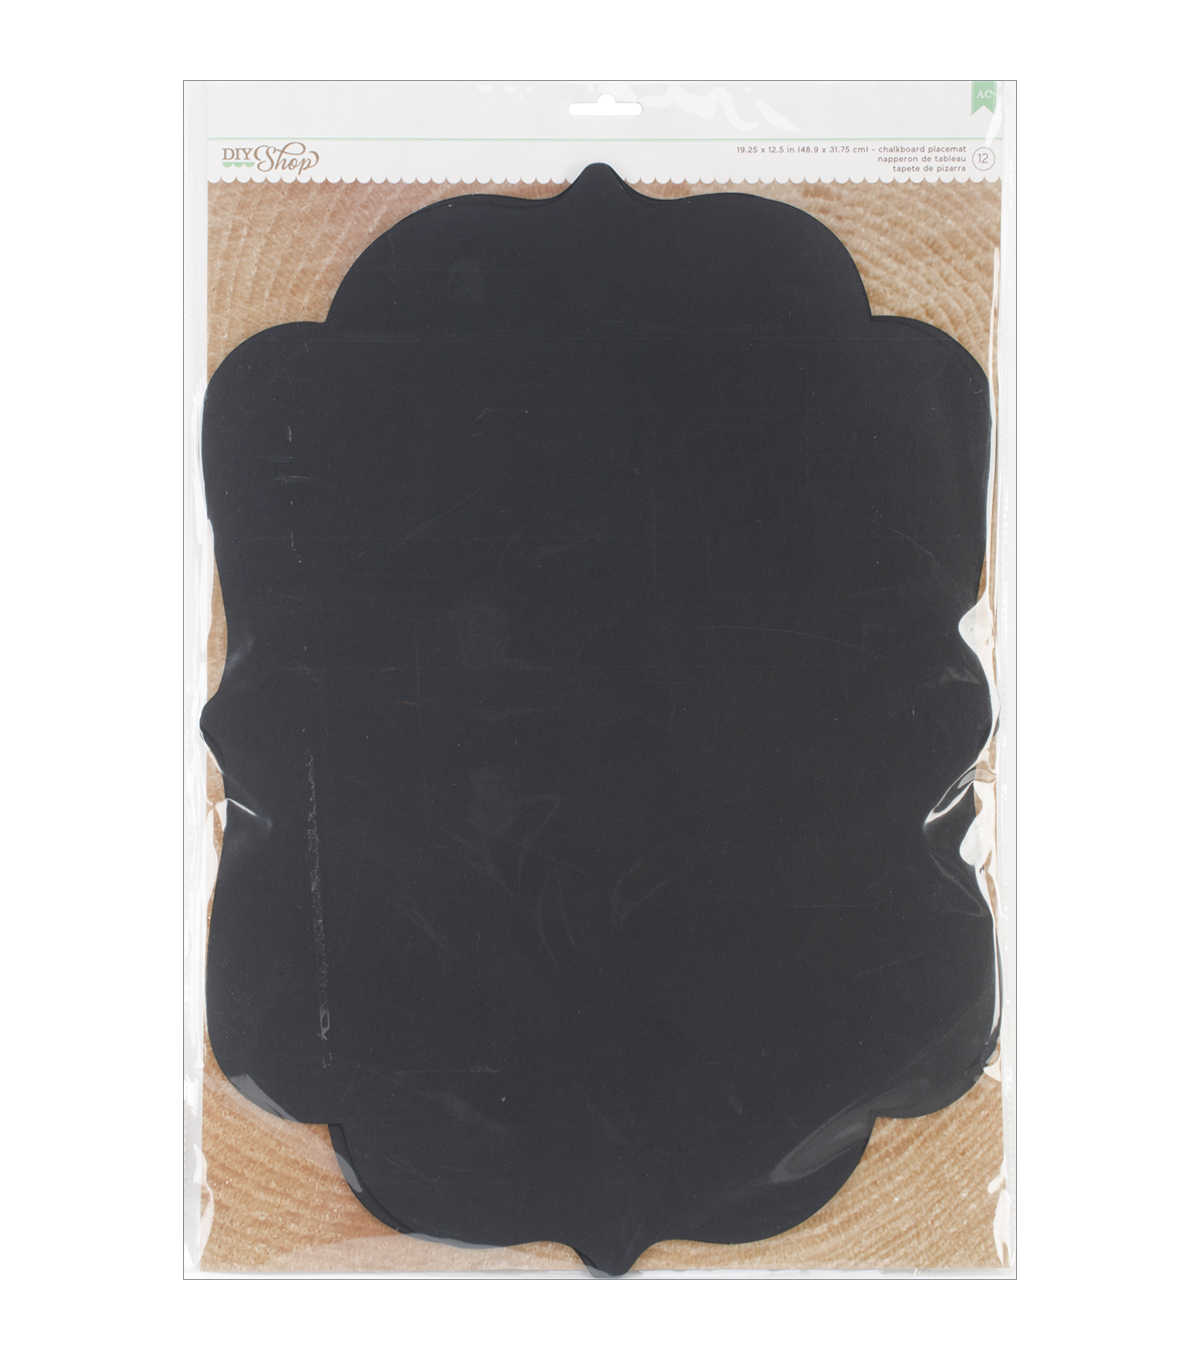 American Crafts DIY Shop 2 Chalkboard Placemat